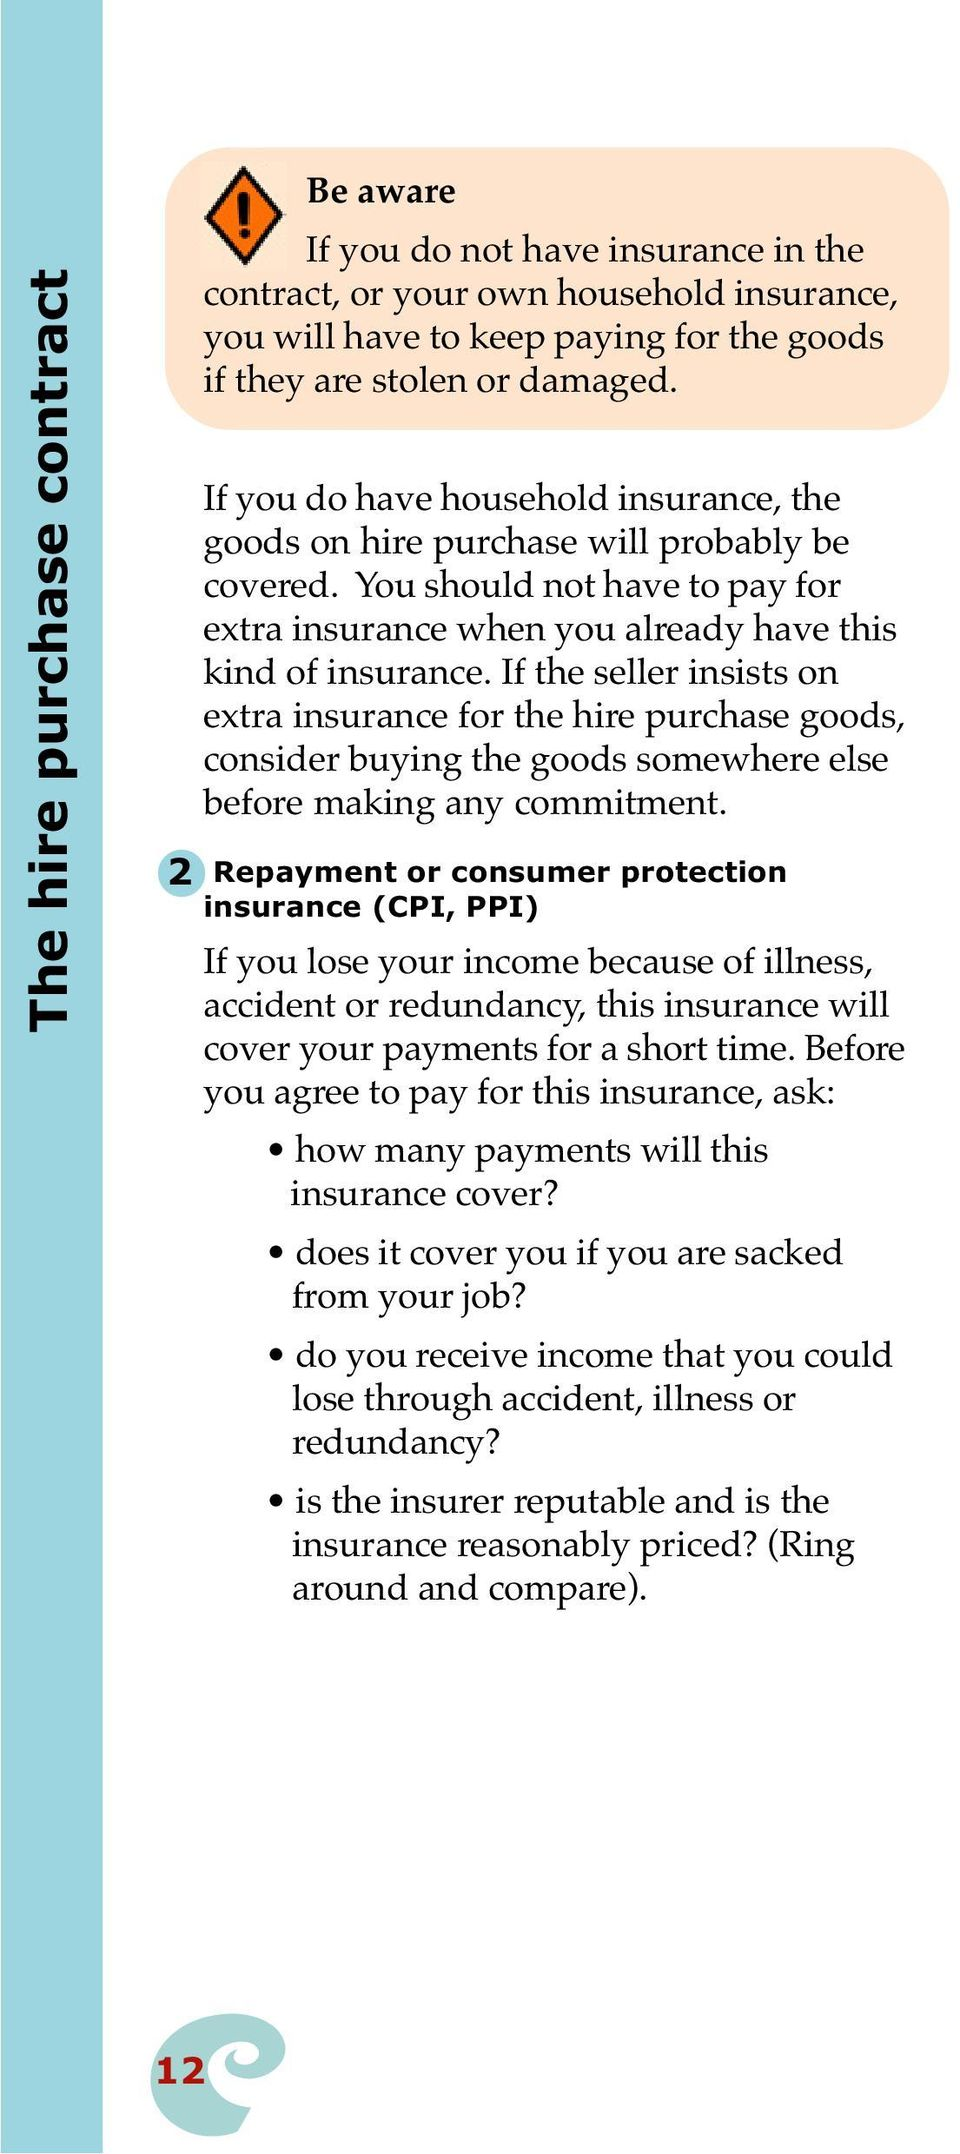 If the seller insists on extra insurance for the hire purchase goods, consider buying the goods somewhere else before making any commitment.